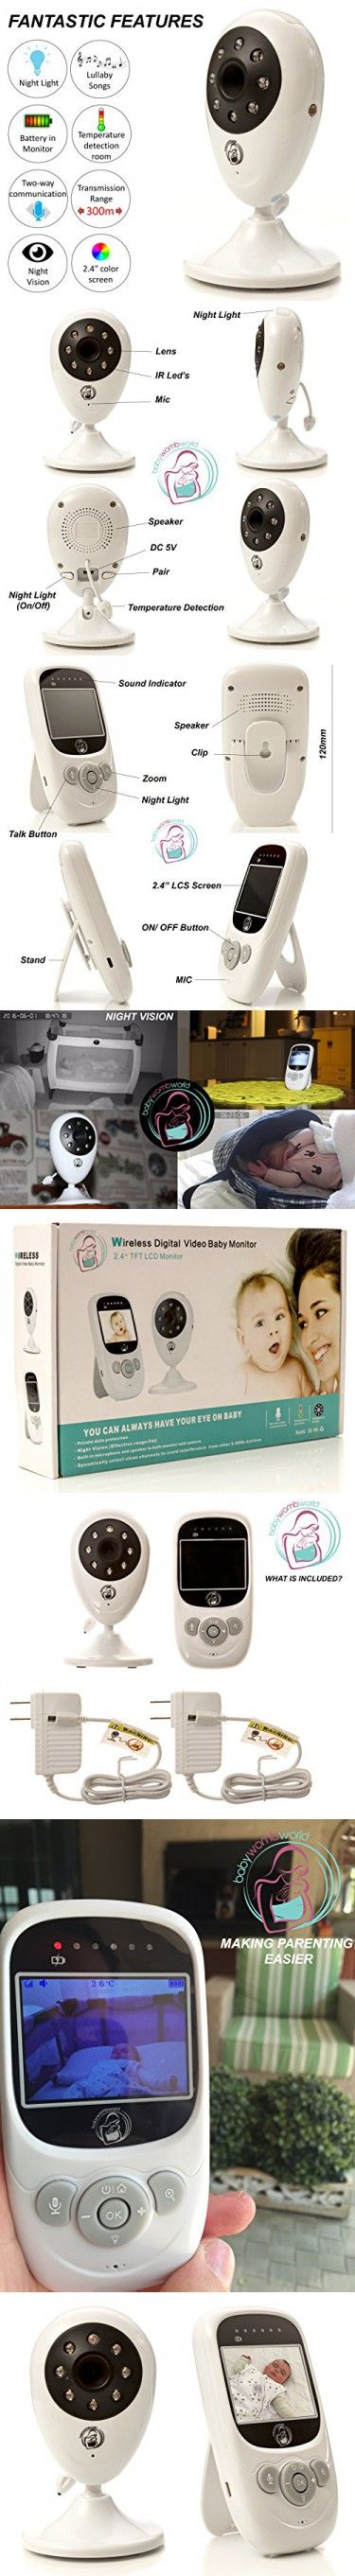 Video baby monitor - Wireless surveillance camera with night vision for remote monitoring of your infant.